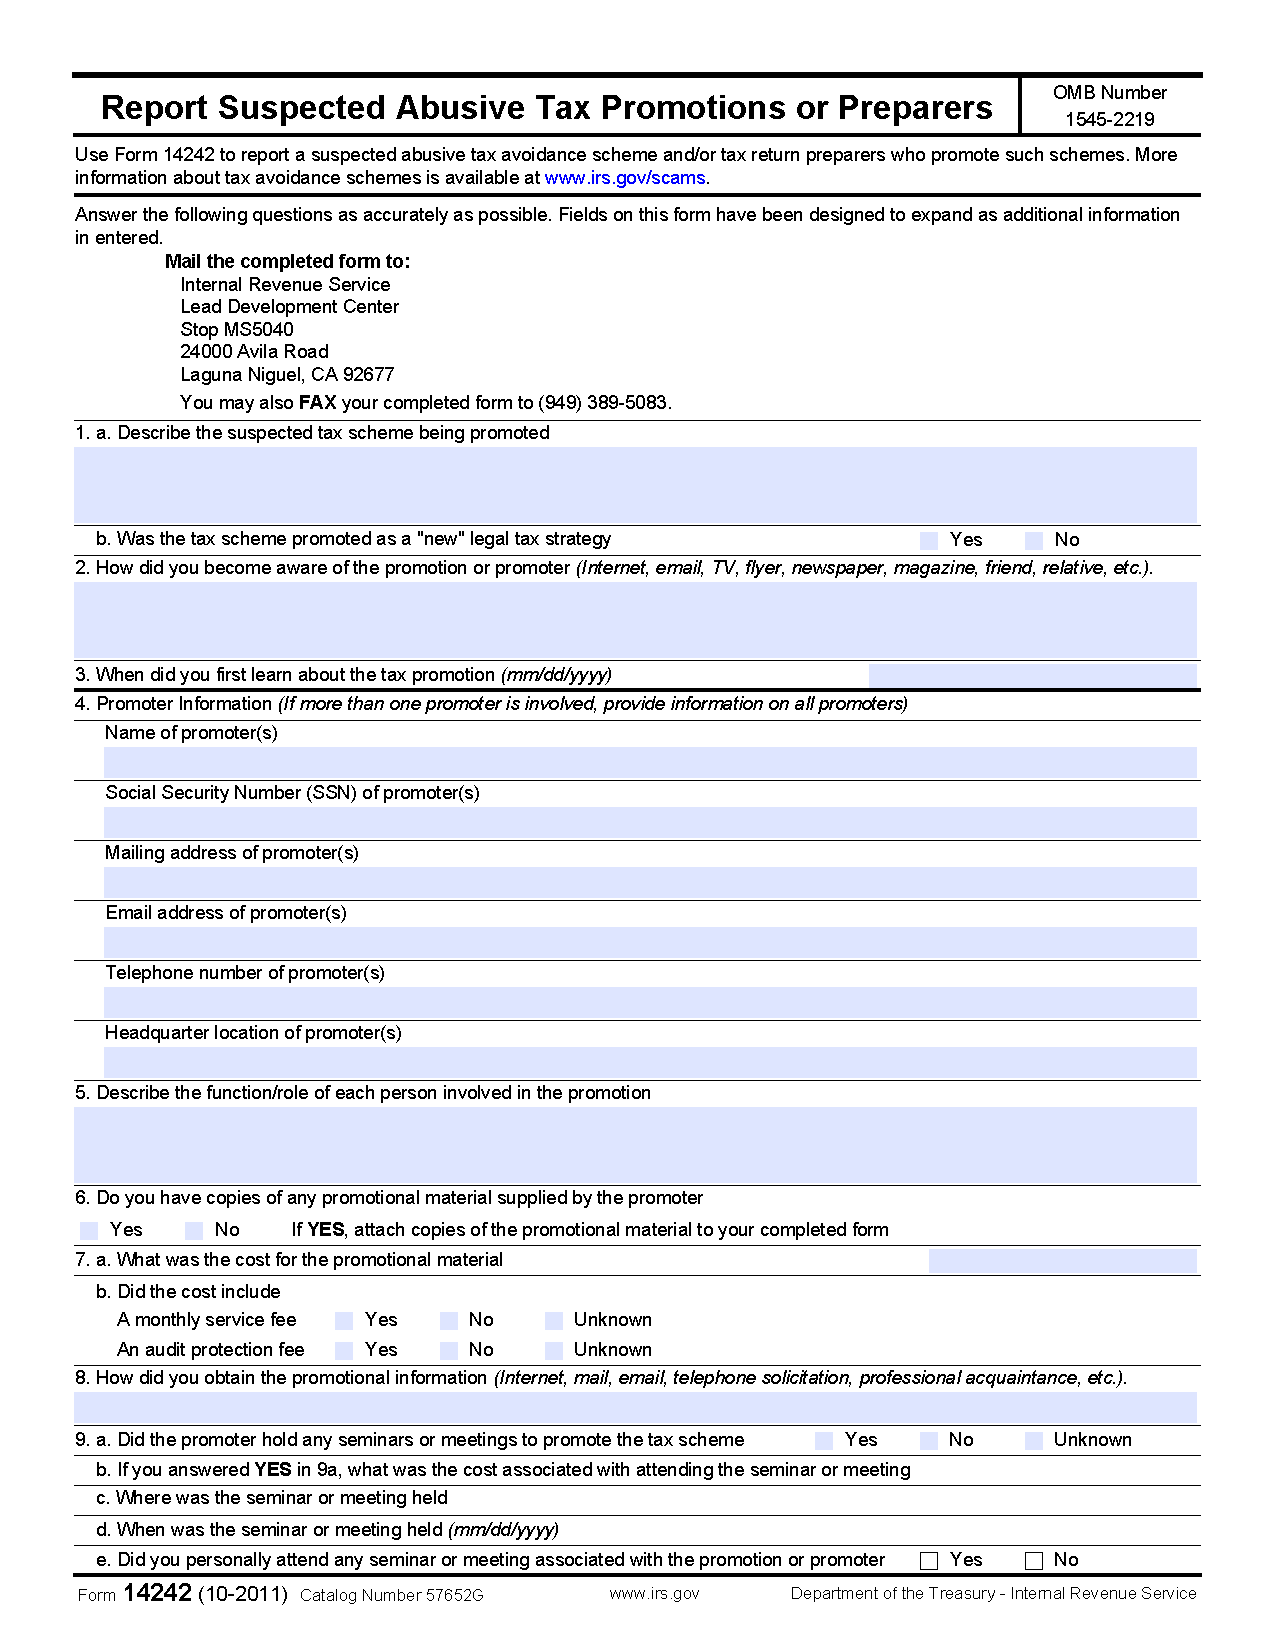 Form 14242 reporting abusive tax promotions andor promoters view all 2011 irs tax forms falaconquin